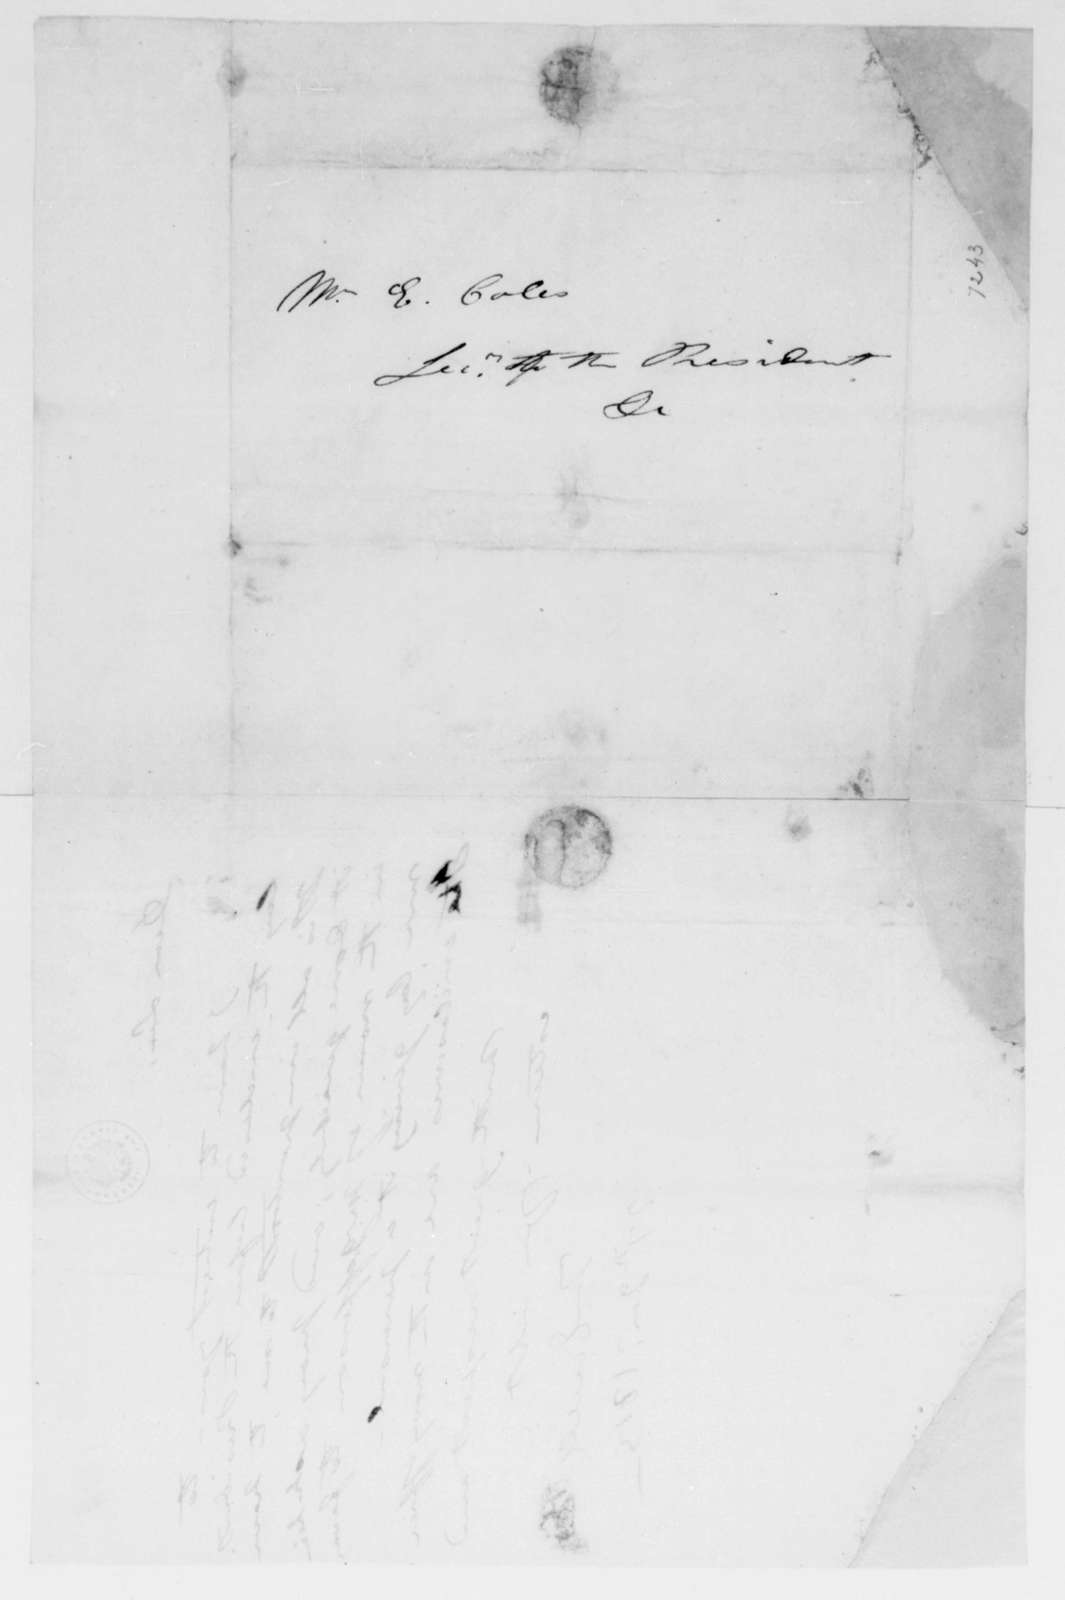 Thomas Ewell to Edward Coles, January 27, 1813.